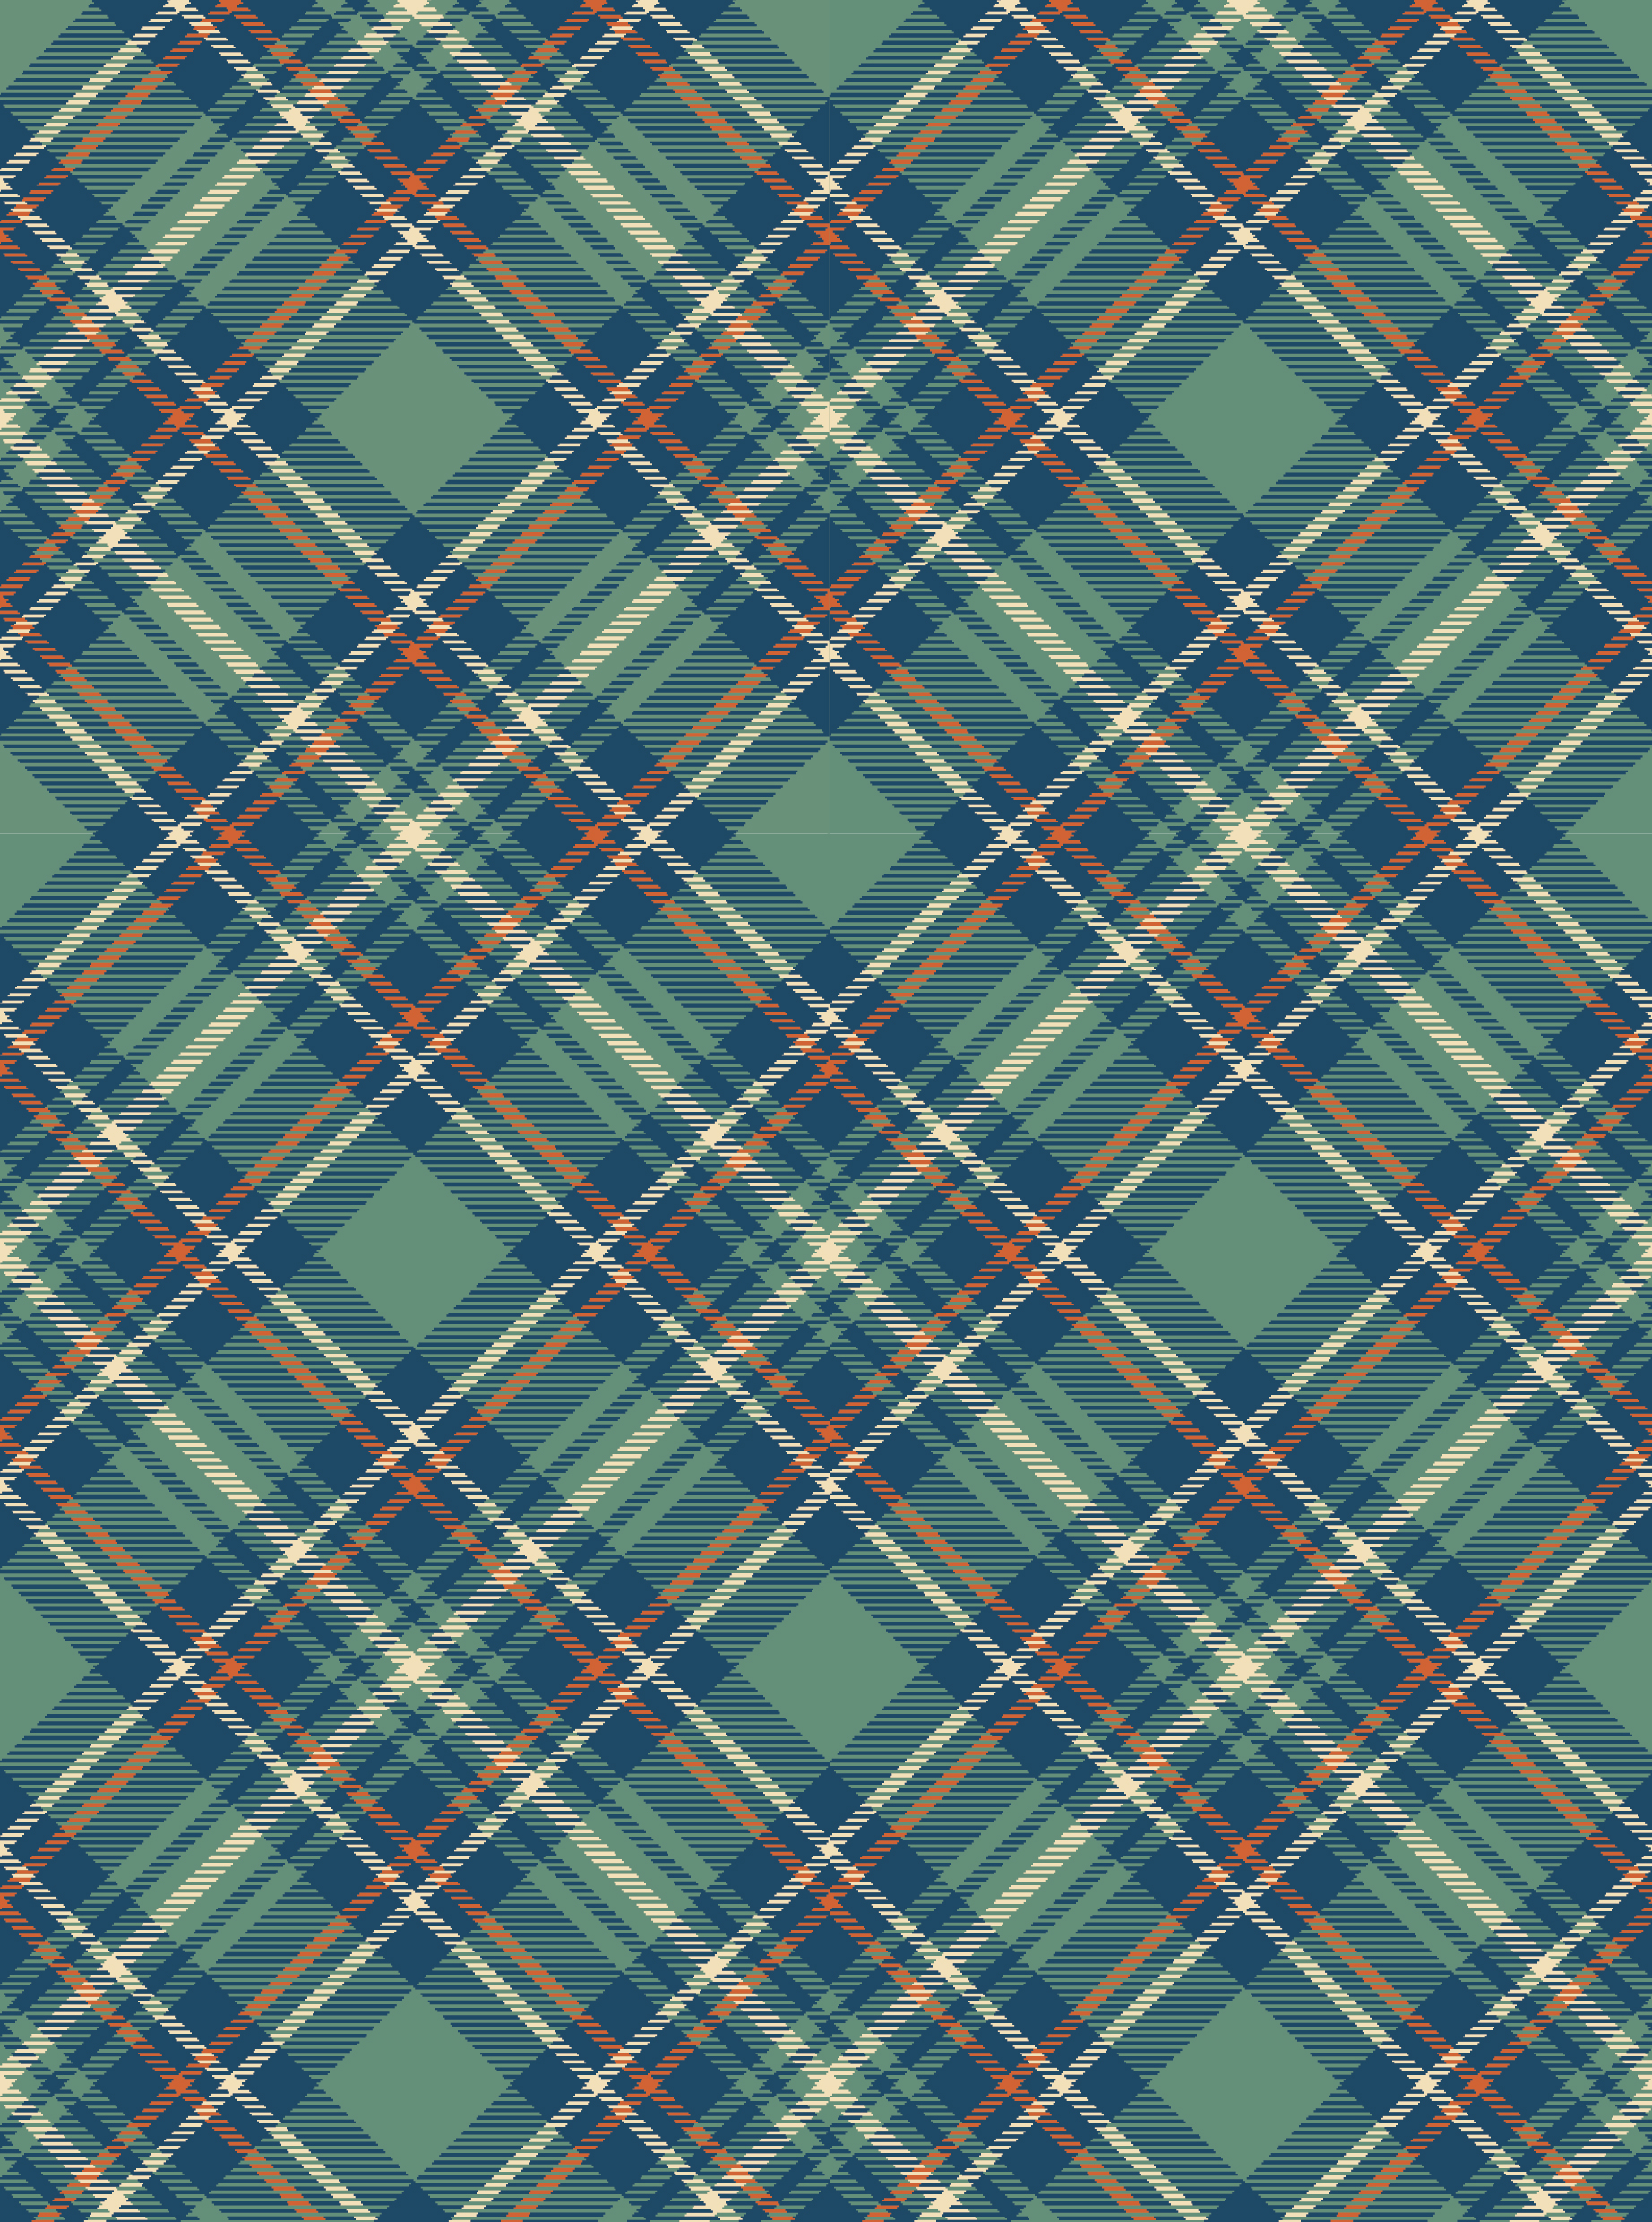 Background #9 (Plaid Your Choice of Colors)